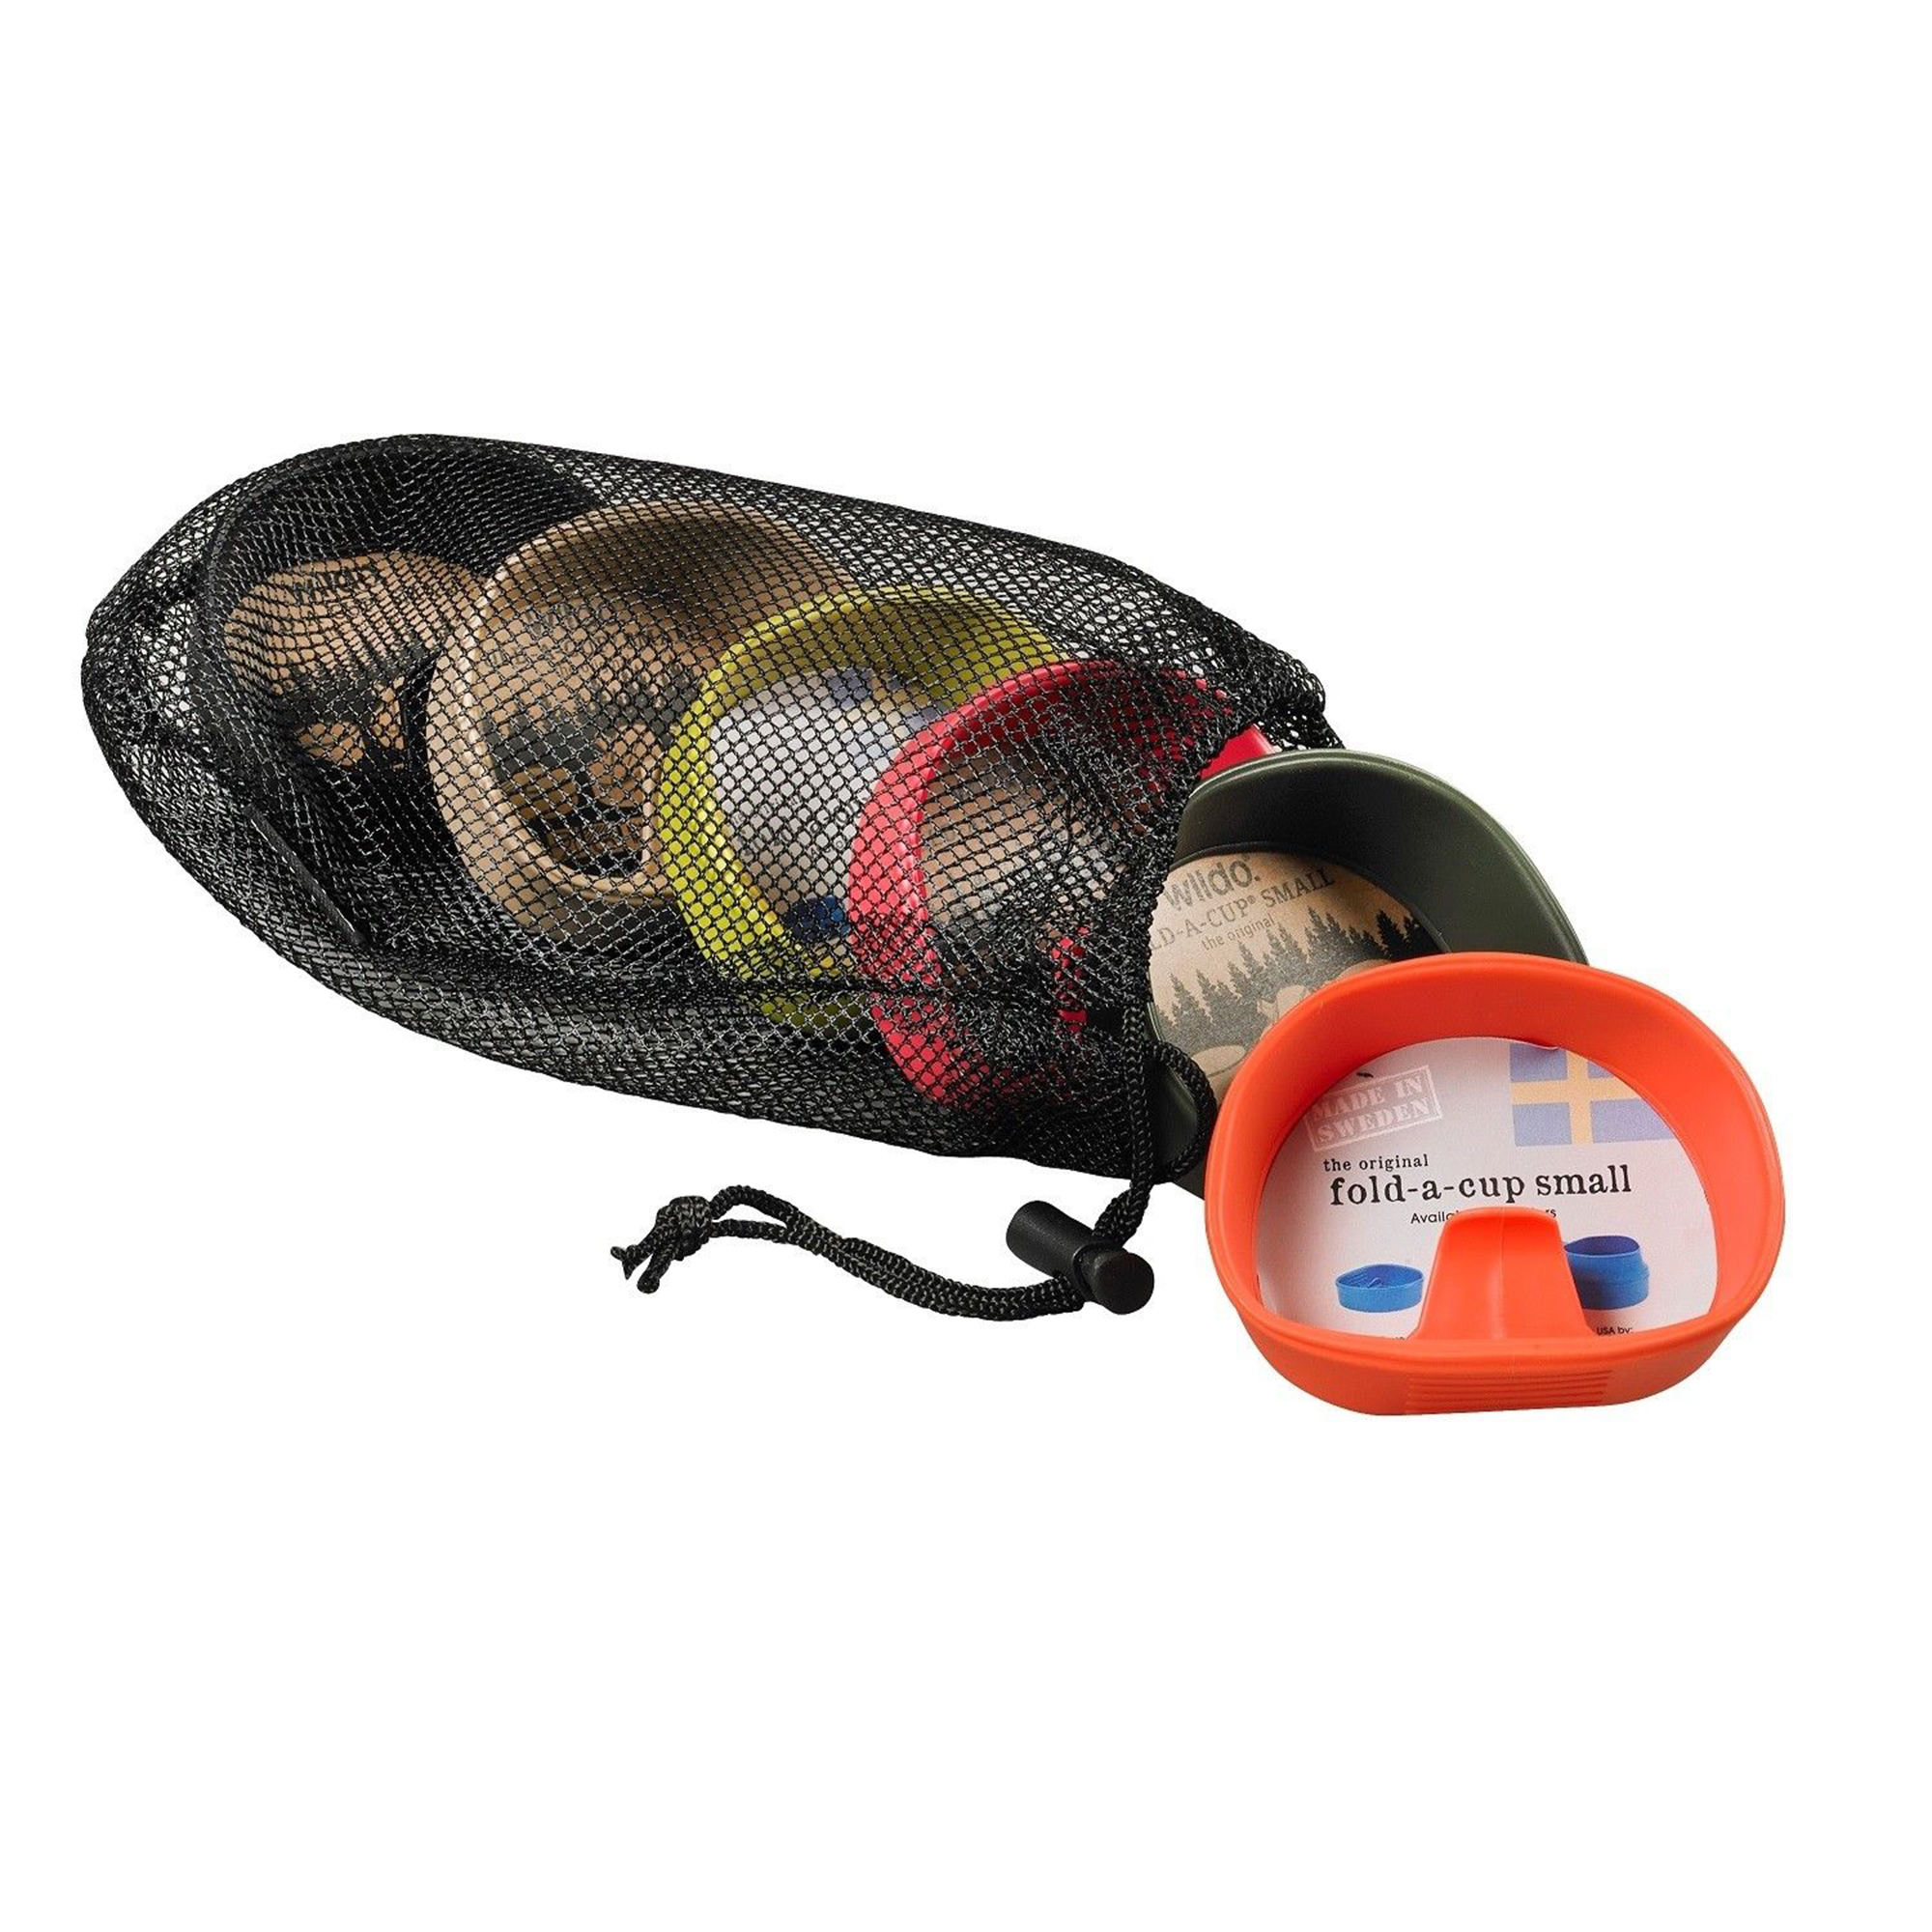 Proforce Equipment Wildo Fold-A-Cup 6 Pack Campware Set Multi Person Set, Hunting/Fishing Colors